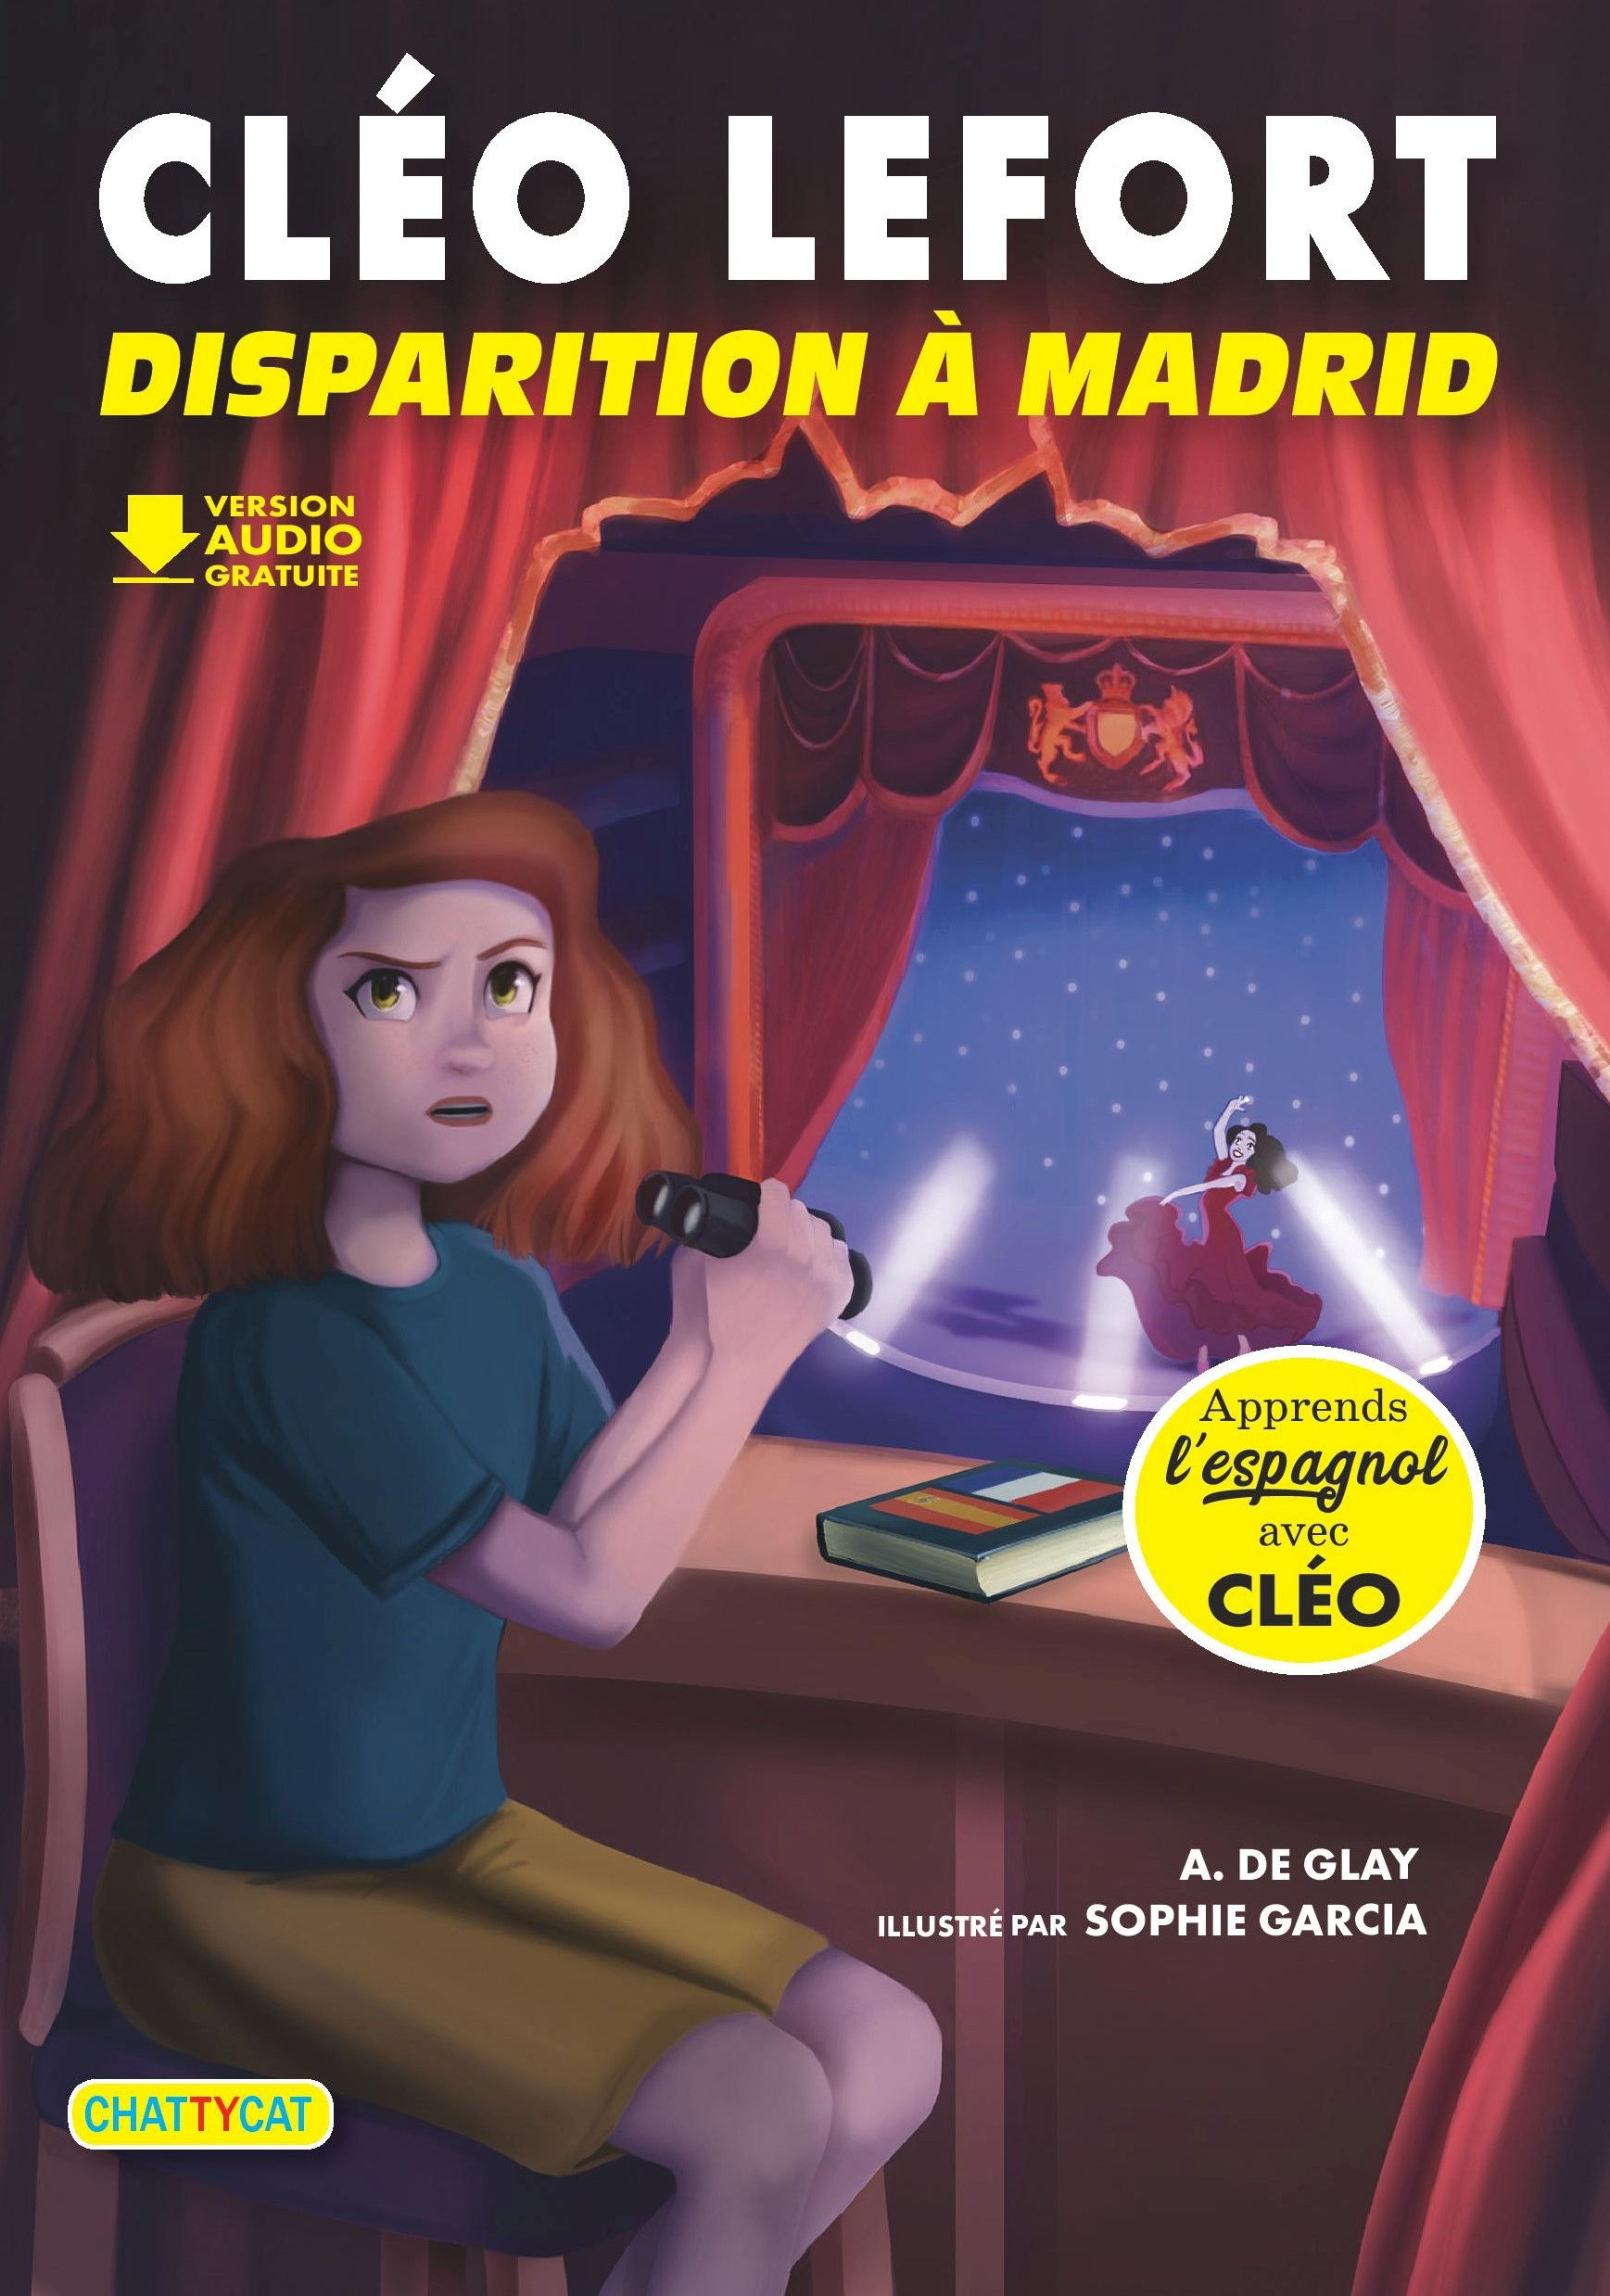 CLEO LEFORT : DISPARITION A MADRID